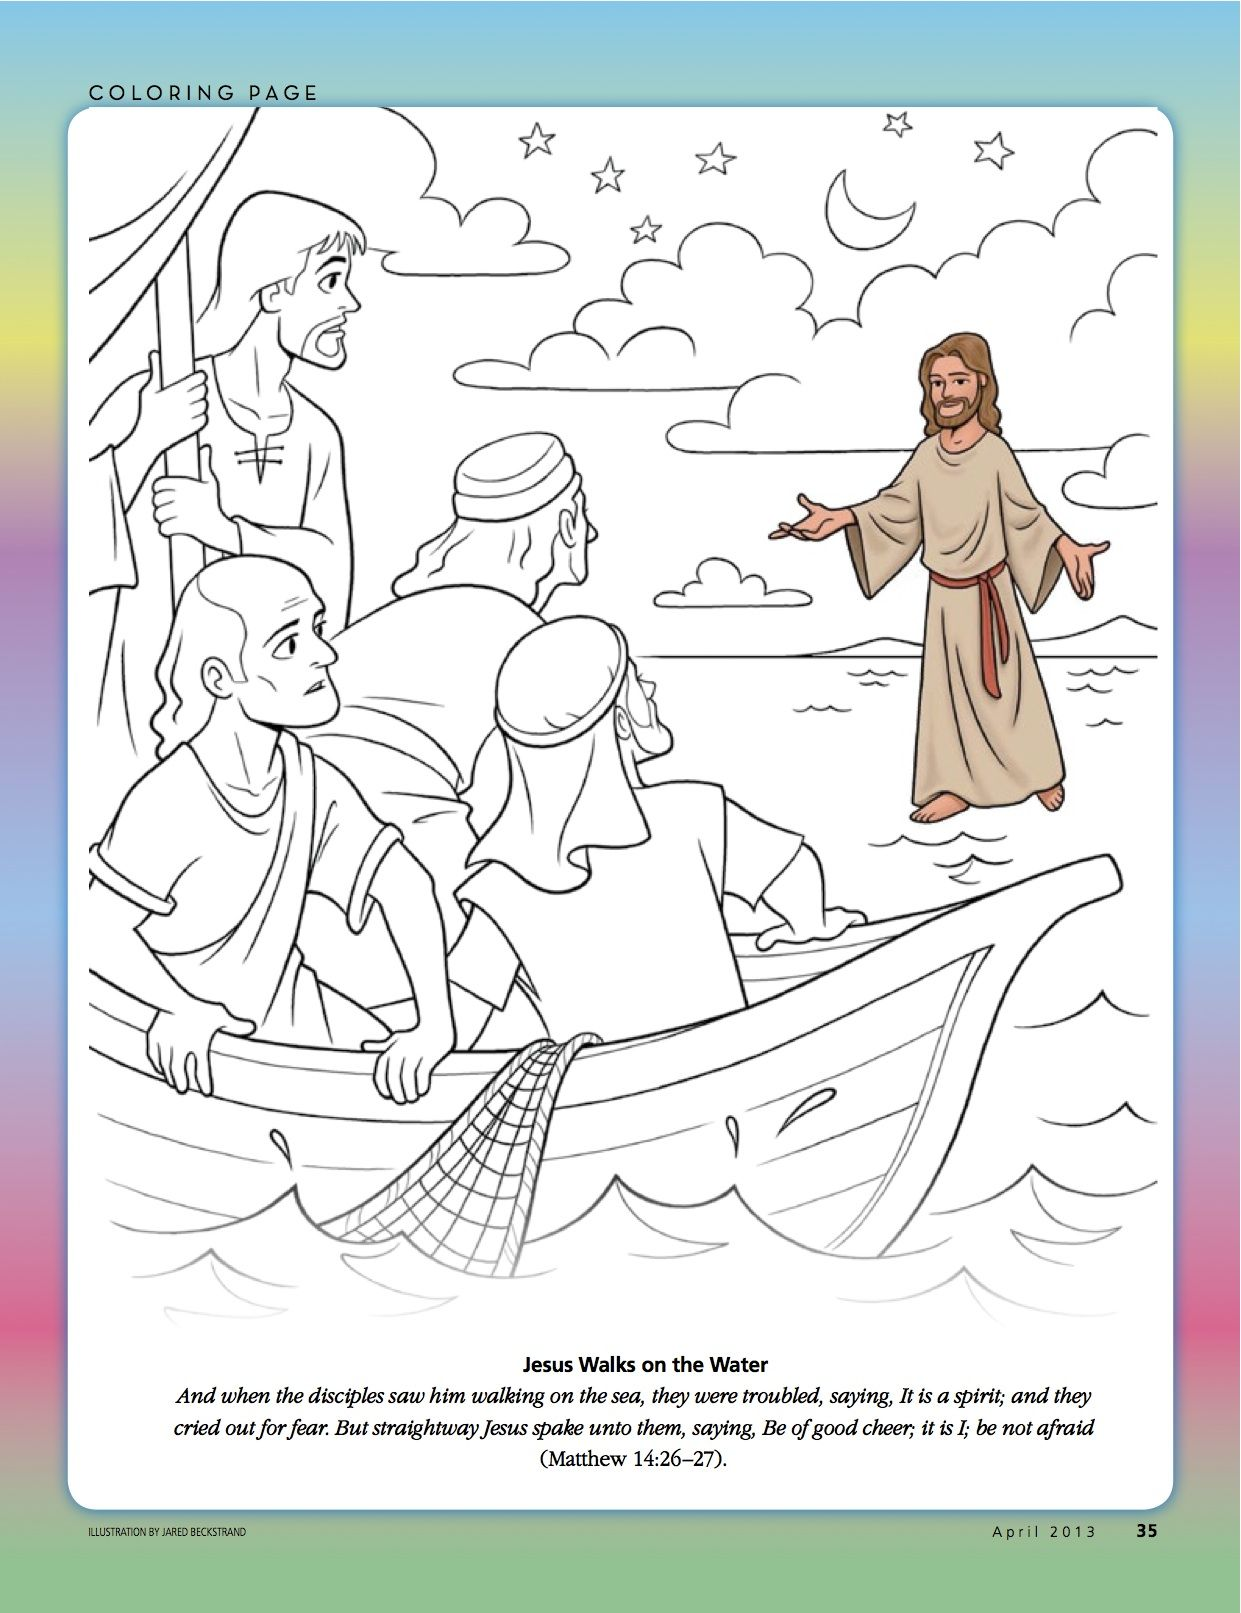 Another coloring page from the Friend! | Church | Pinterest